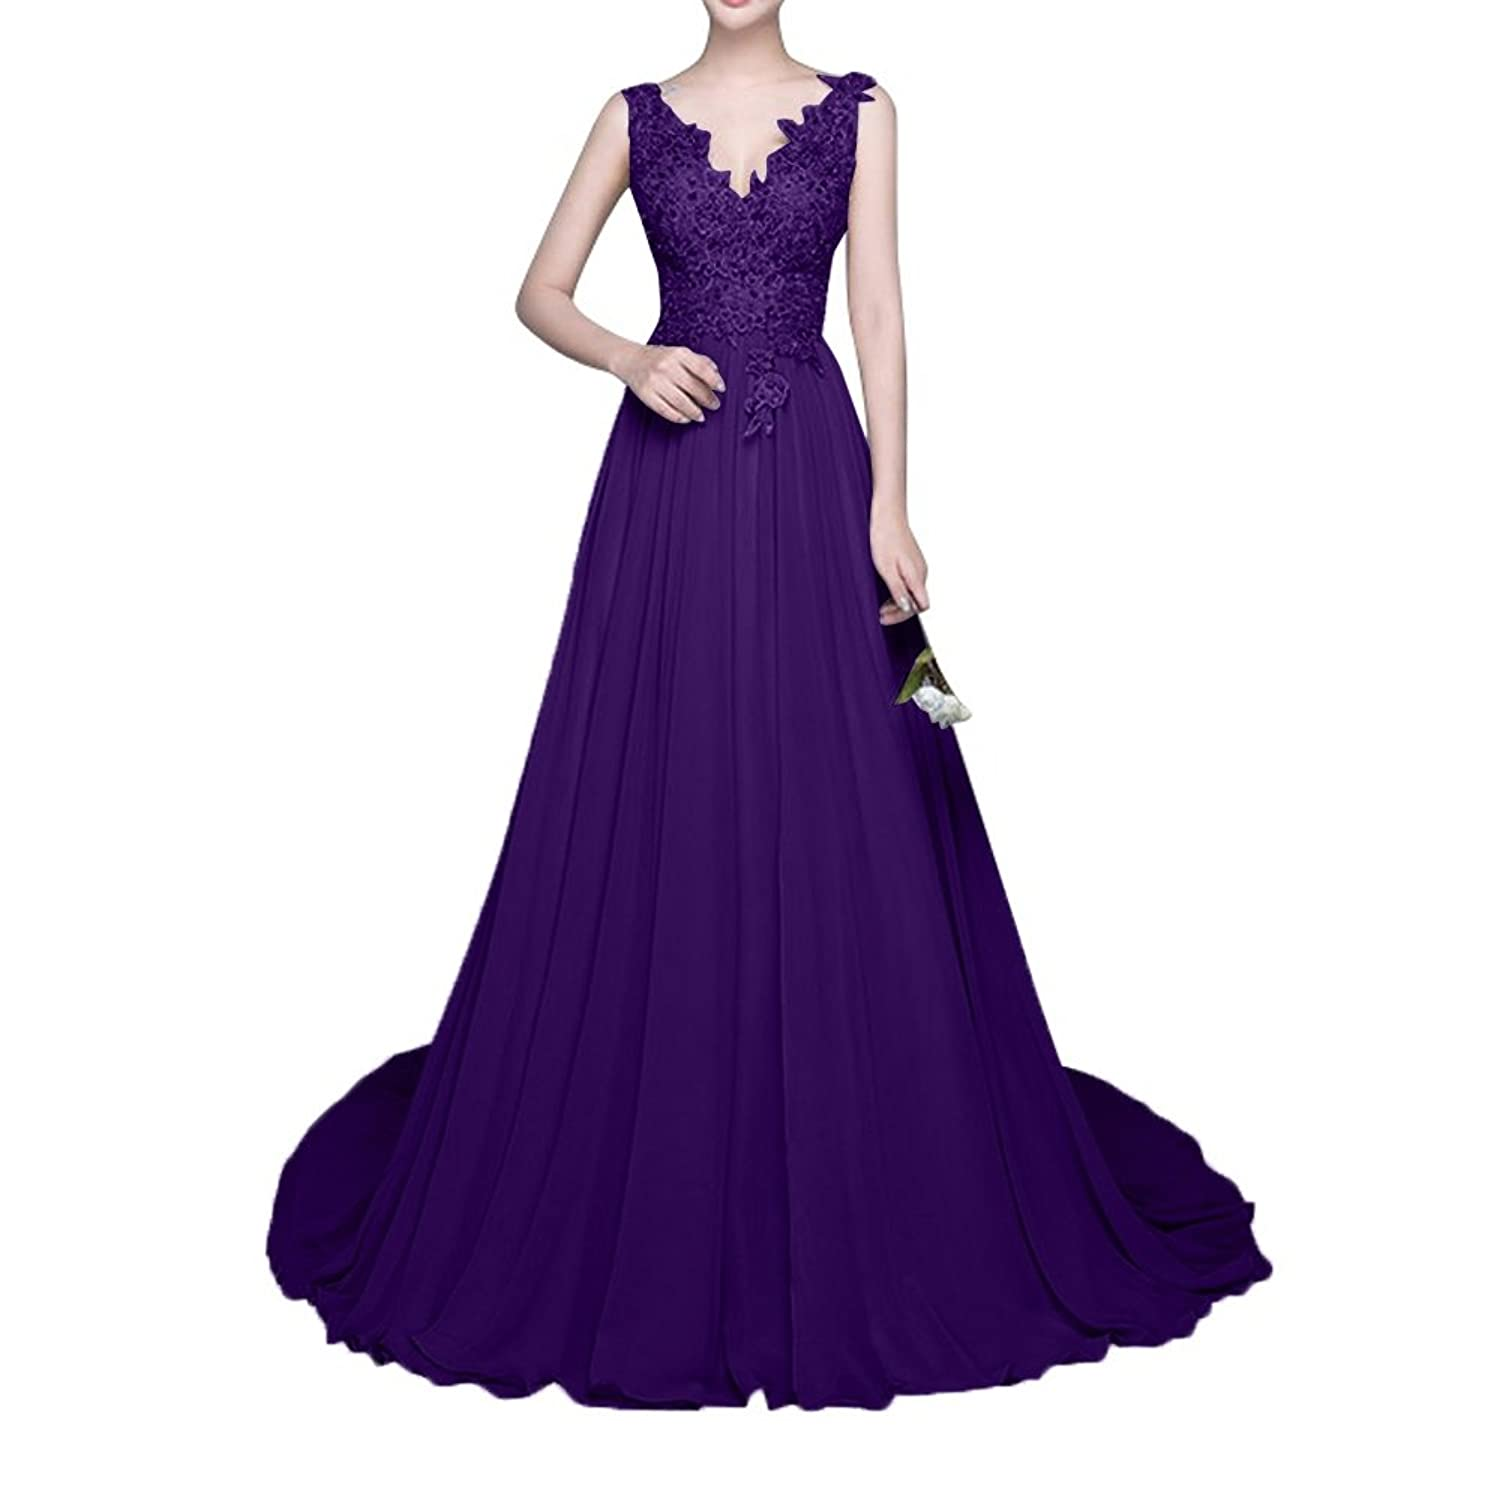 Charm Bridal Long Sexy Deep V Chiffon Women Prom Dress Bride Gowns with Train